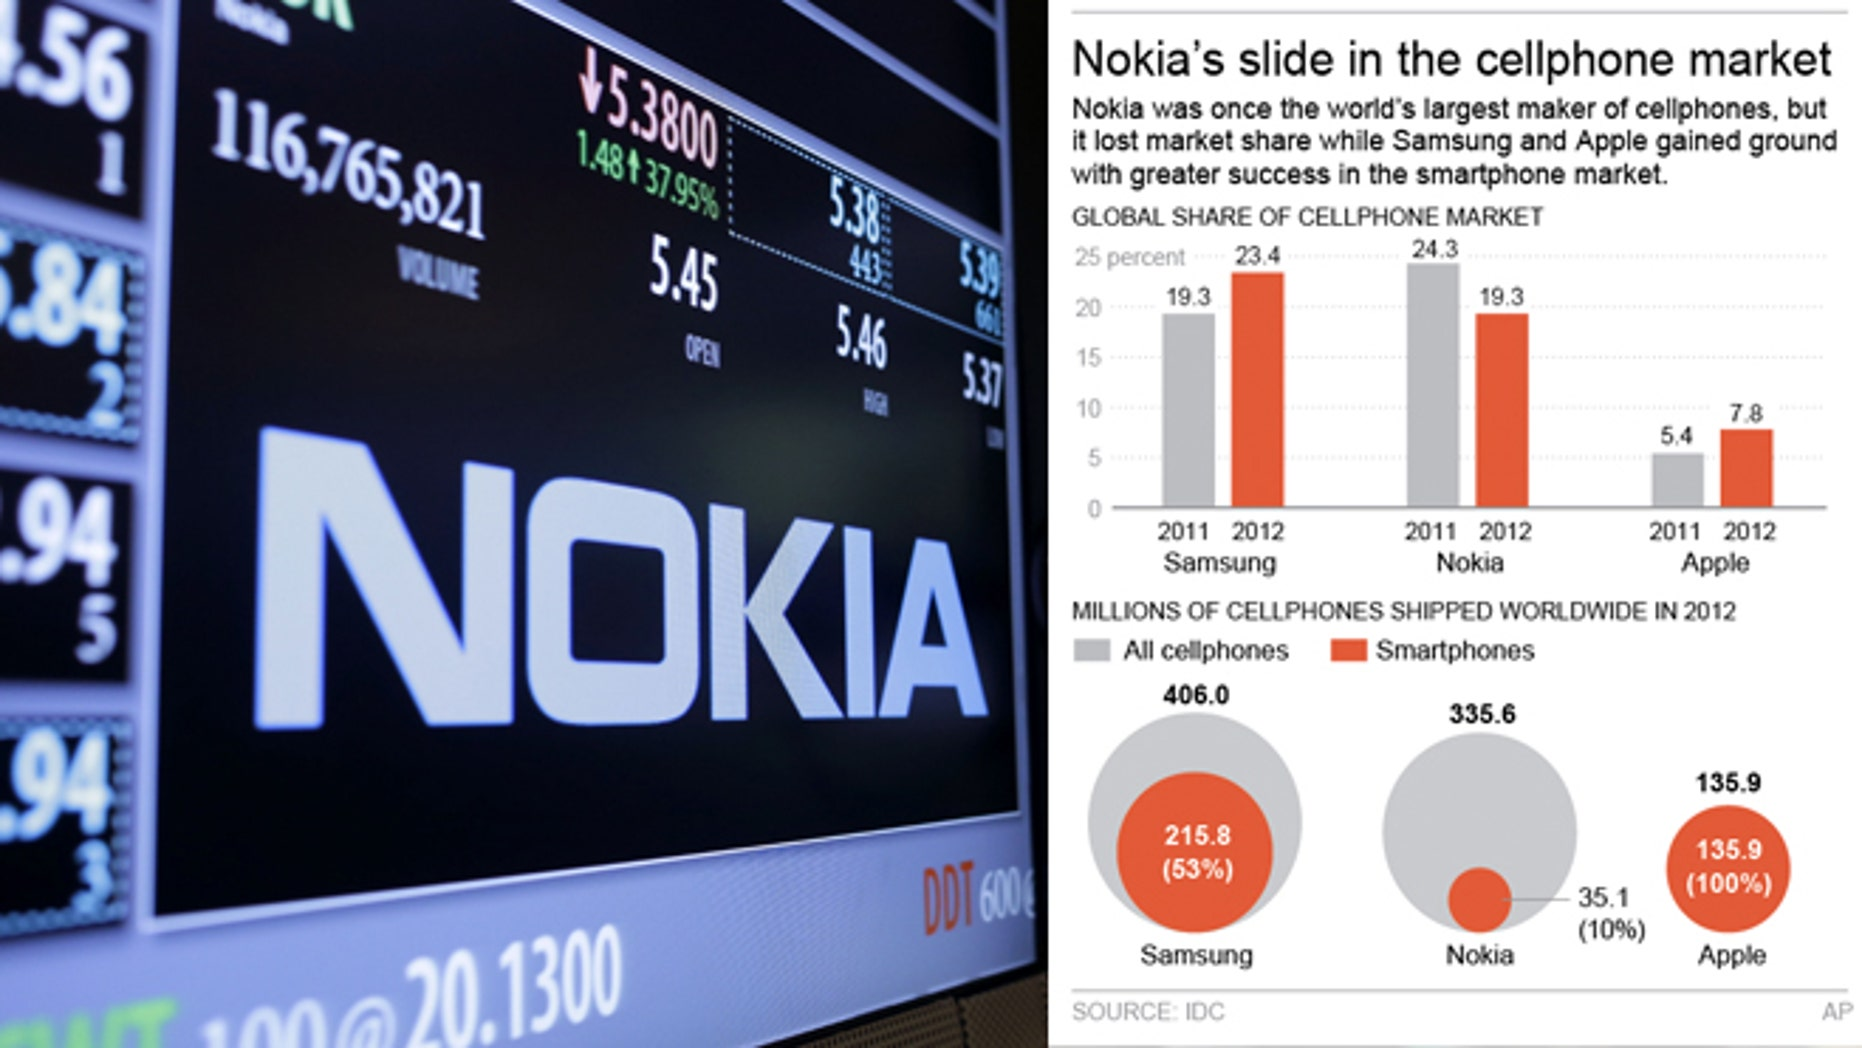 The Nokia brand name is displayed on the floor of the New York Stock Exchange in New York, Tuesday, Sept. 3, 2013. On Tuesday, Microsoft announced it would pay $7.2 billion to acquire Nokia's line-up of smartphones and a portfolio of patents and services. (AP Photo/Seth Wenig)